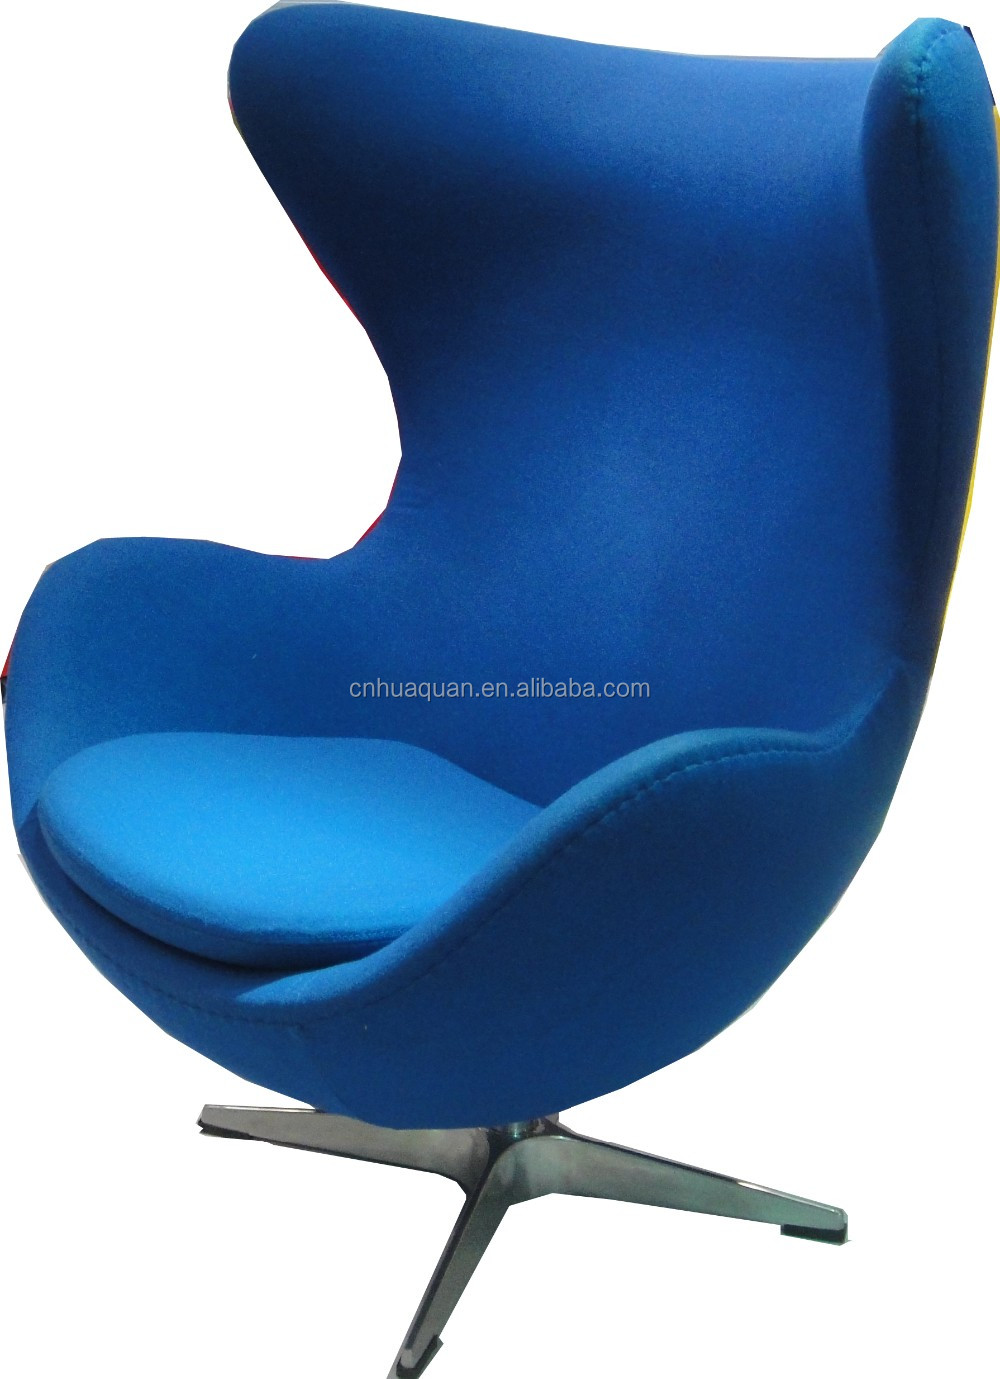 A712#egg shaped chair,fabric leisure chair,office sofa single seat,school furniture smart classroom